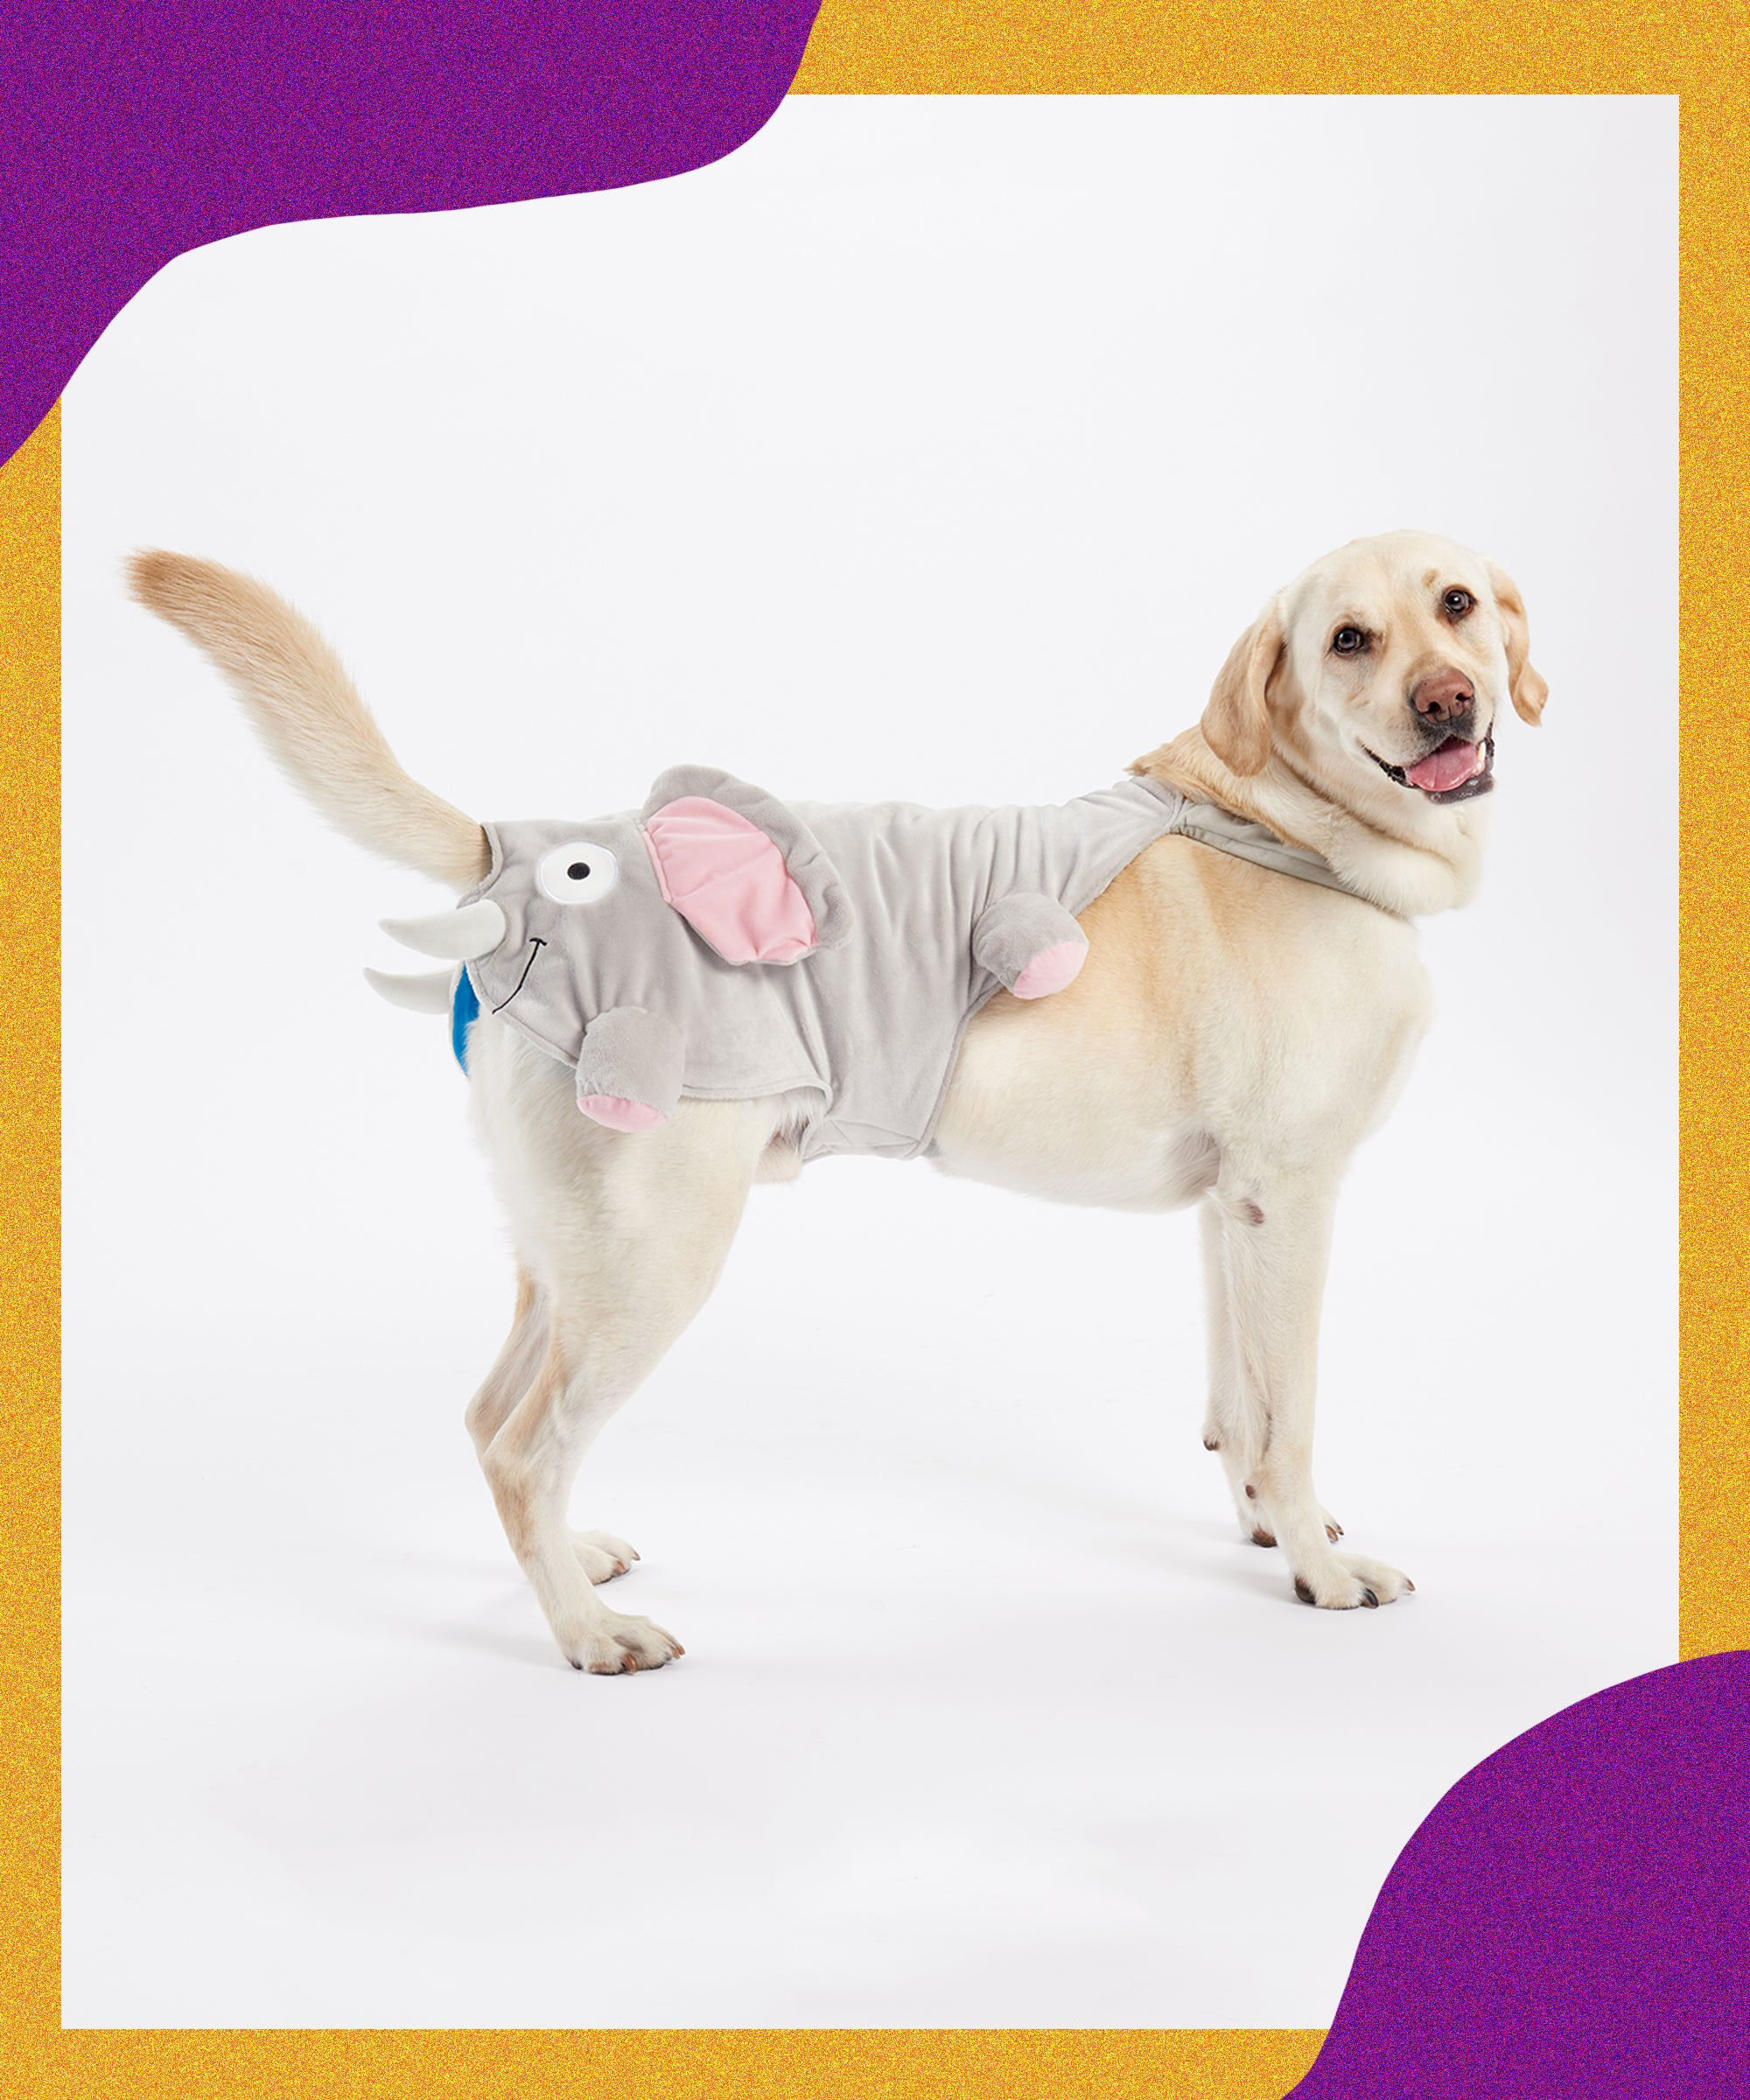 Dog Halloween Costumes So Cute That Your Pet Will Outshine You